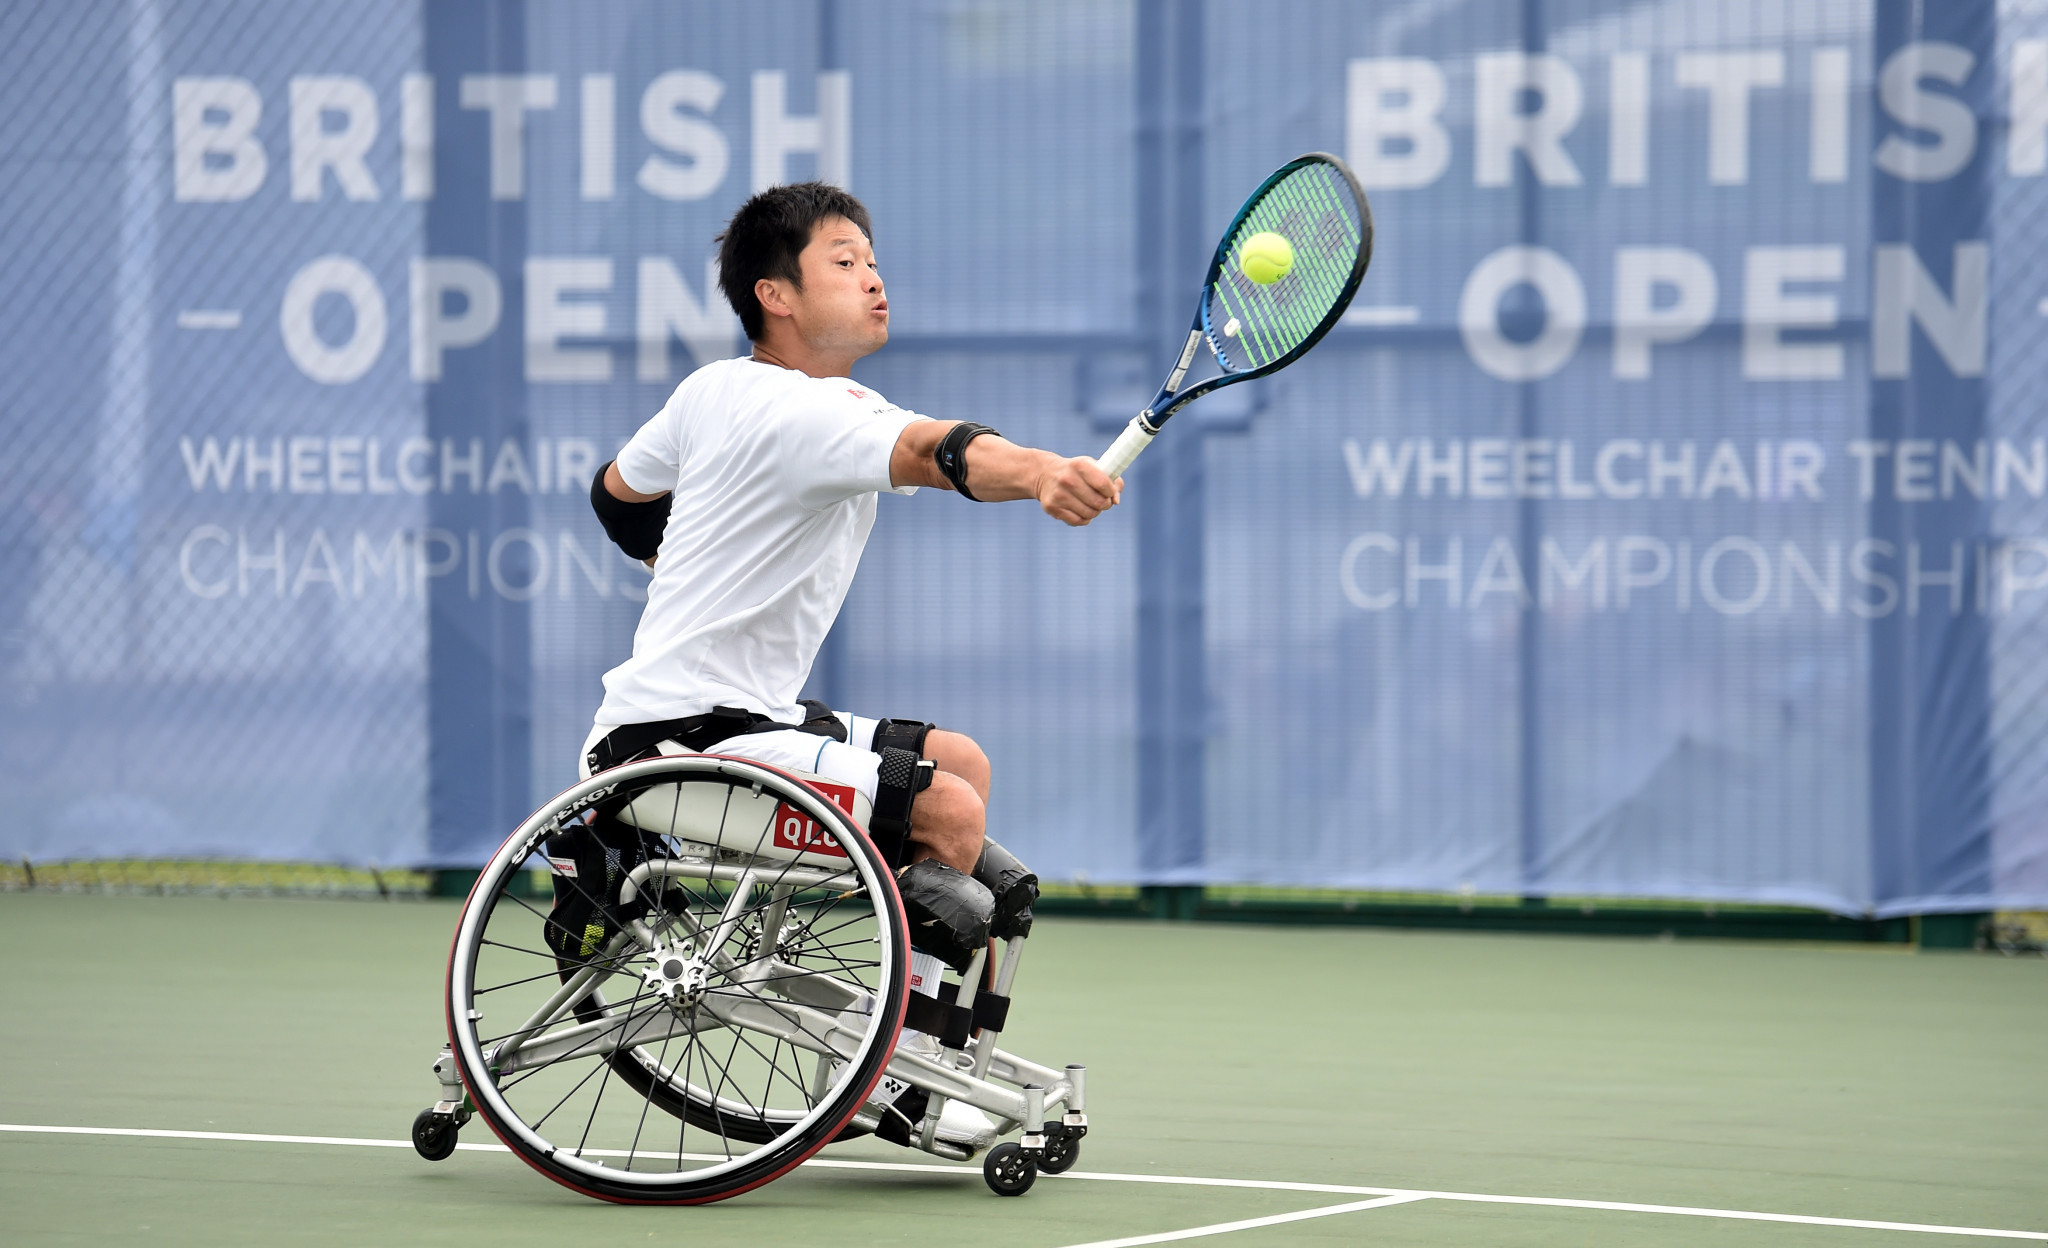 ITF confirm 104 tennis players set to compete at Tokyo 2020 Paralympics